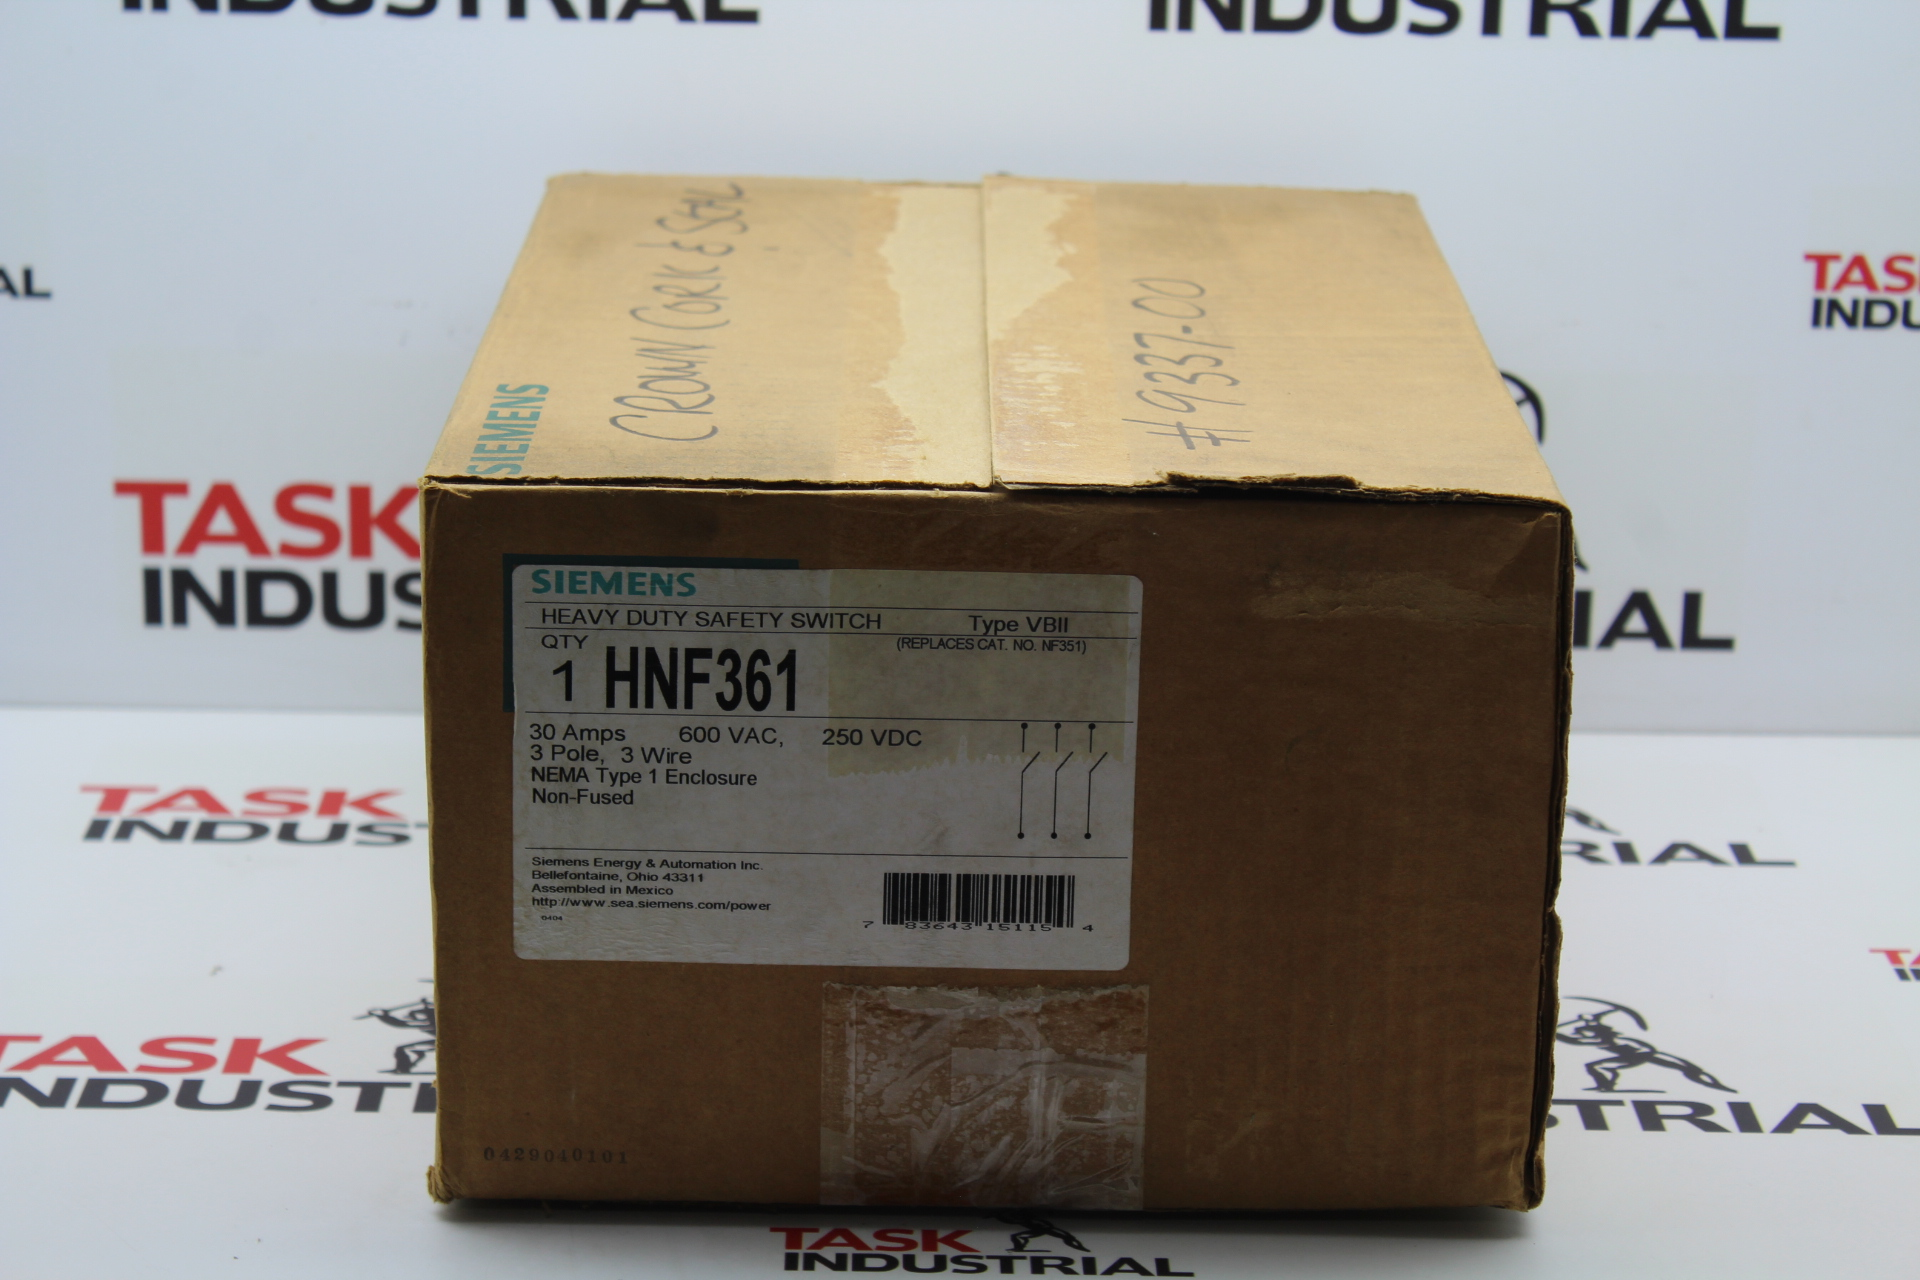 Siemens Hnf361 30 Amp 3 Pole 600 Volt Wire Non Fused Heavy Duty Fuse Switch Box Safety